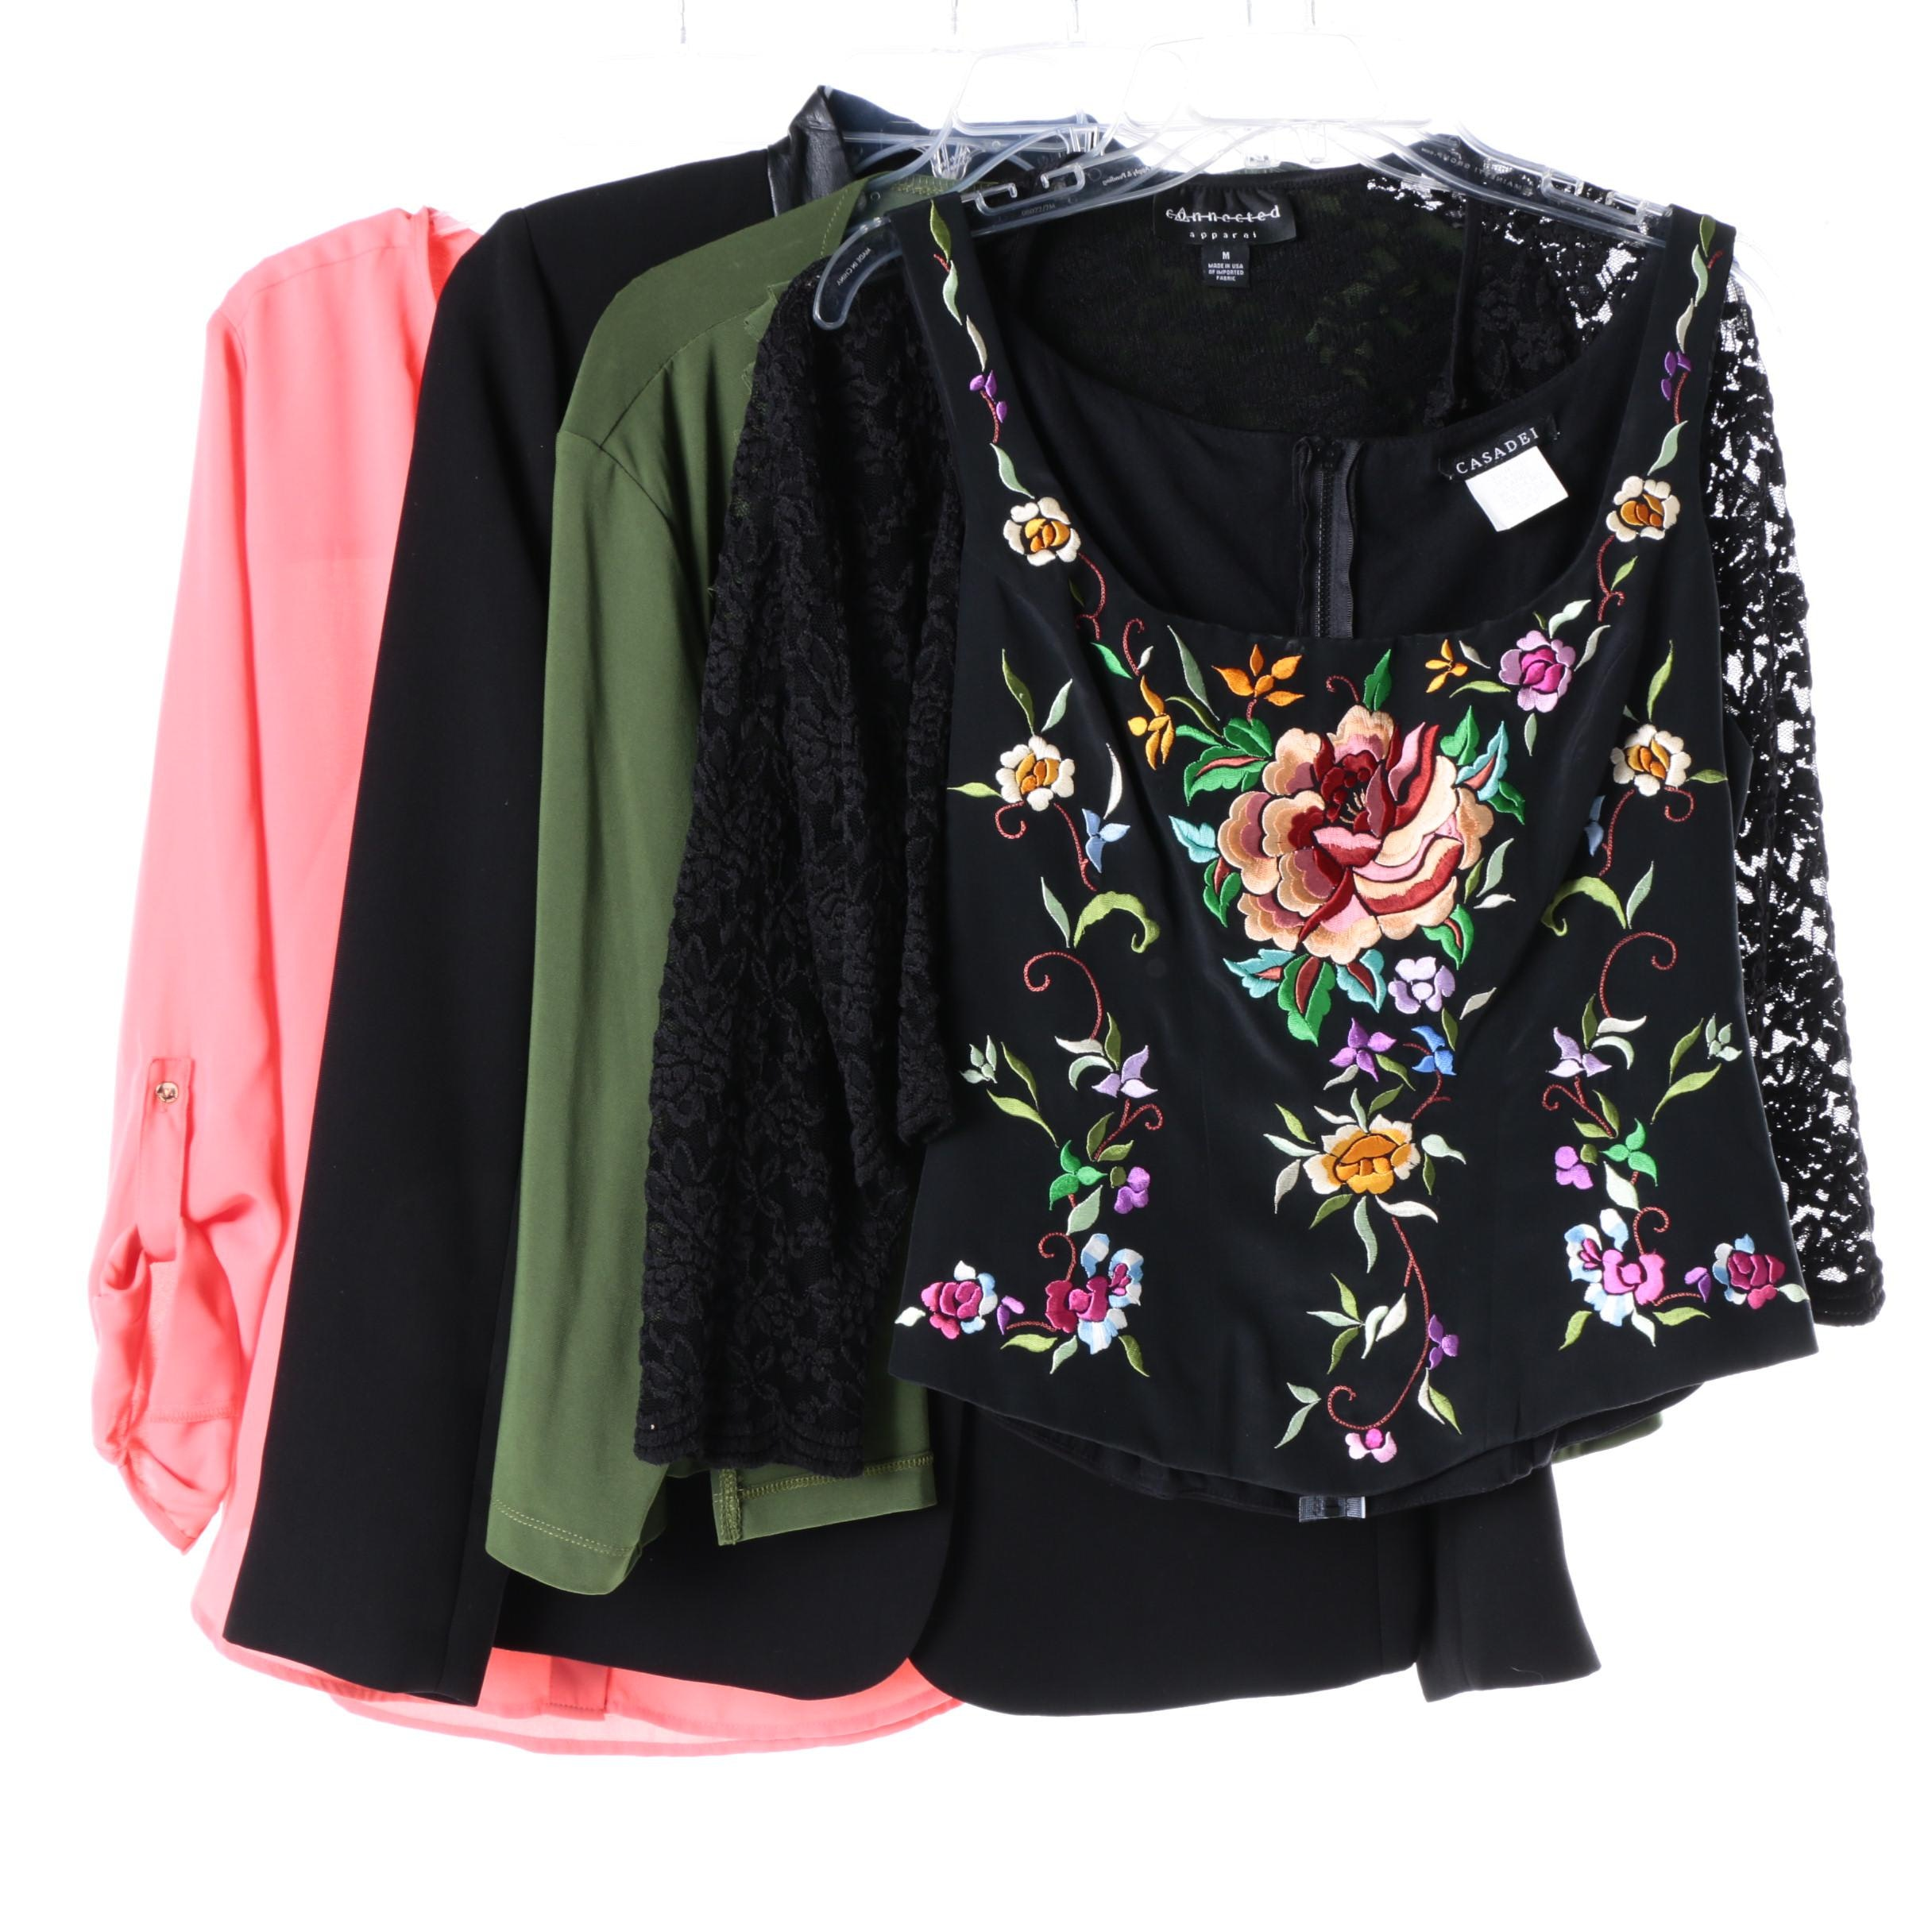 Women's Shirts and Jackets Including Casadei